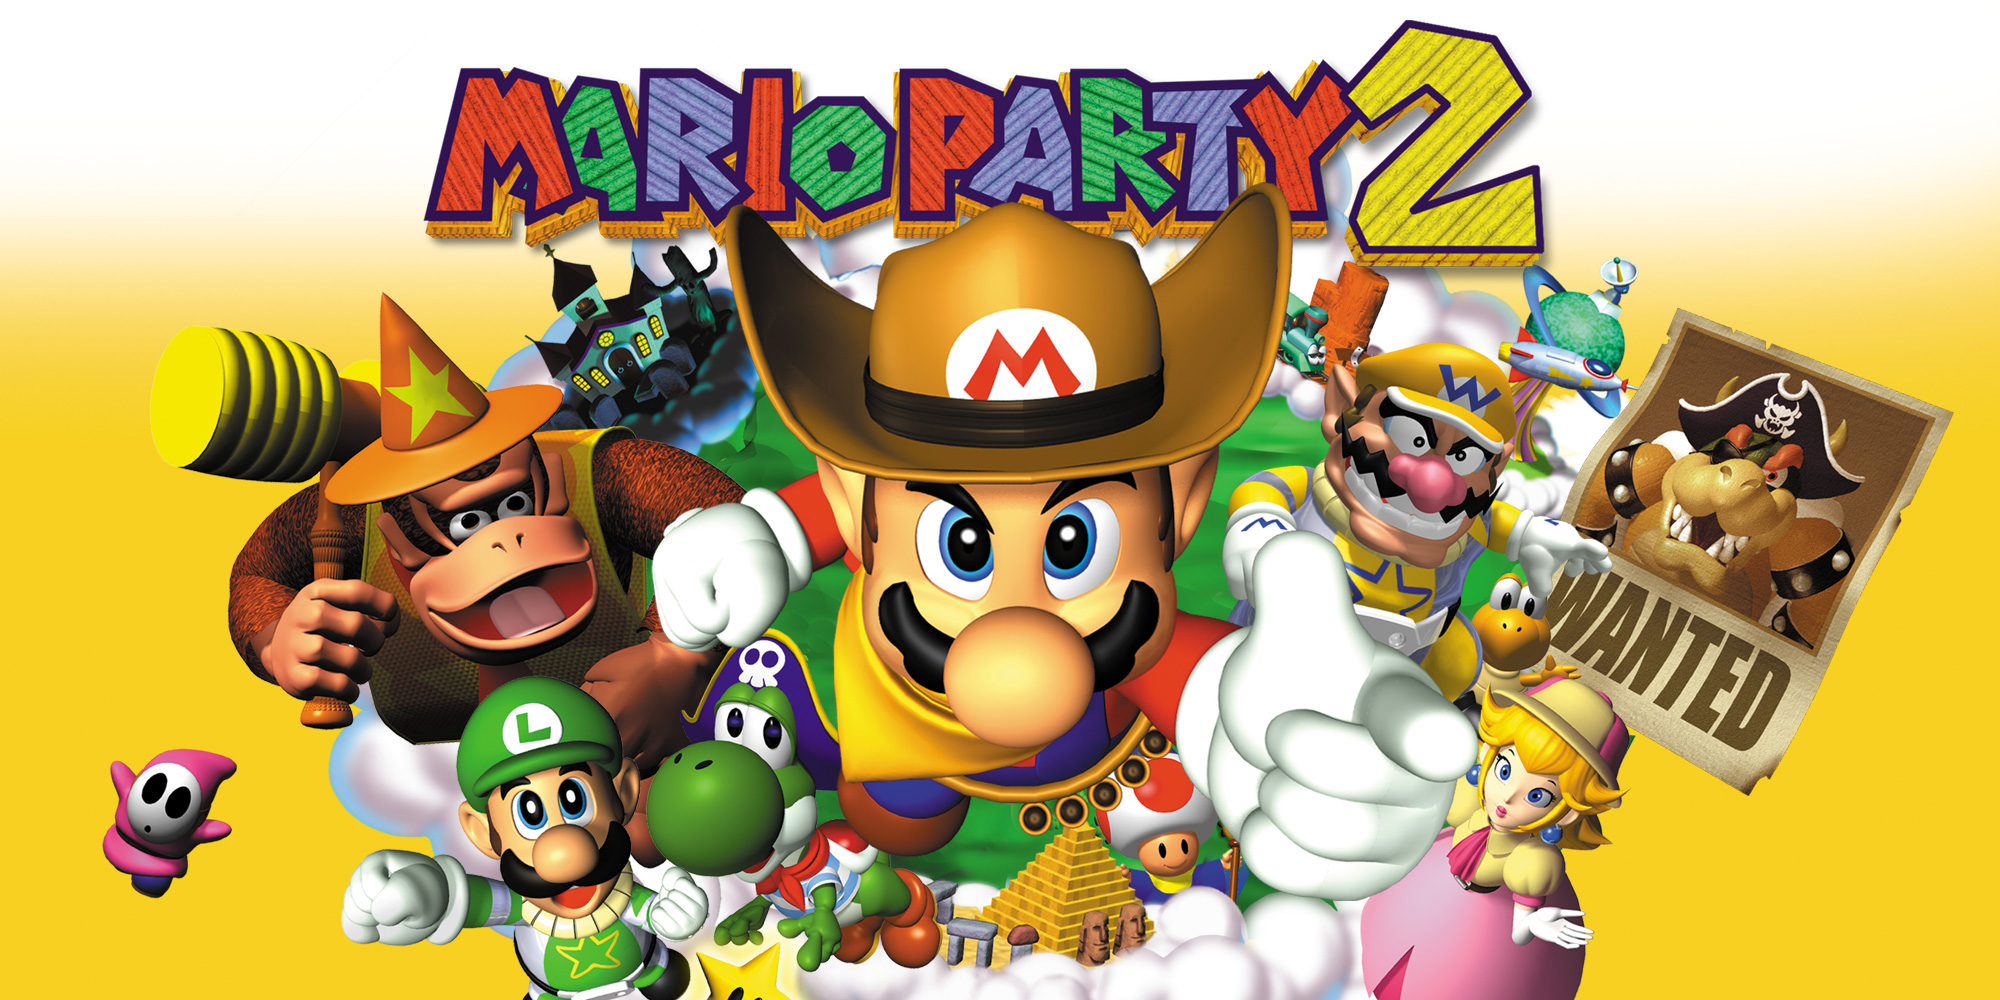 Last Game You Finished And Your Four-ghts - Page 13 H2x1_N64_MarioParty2